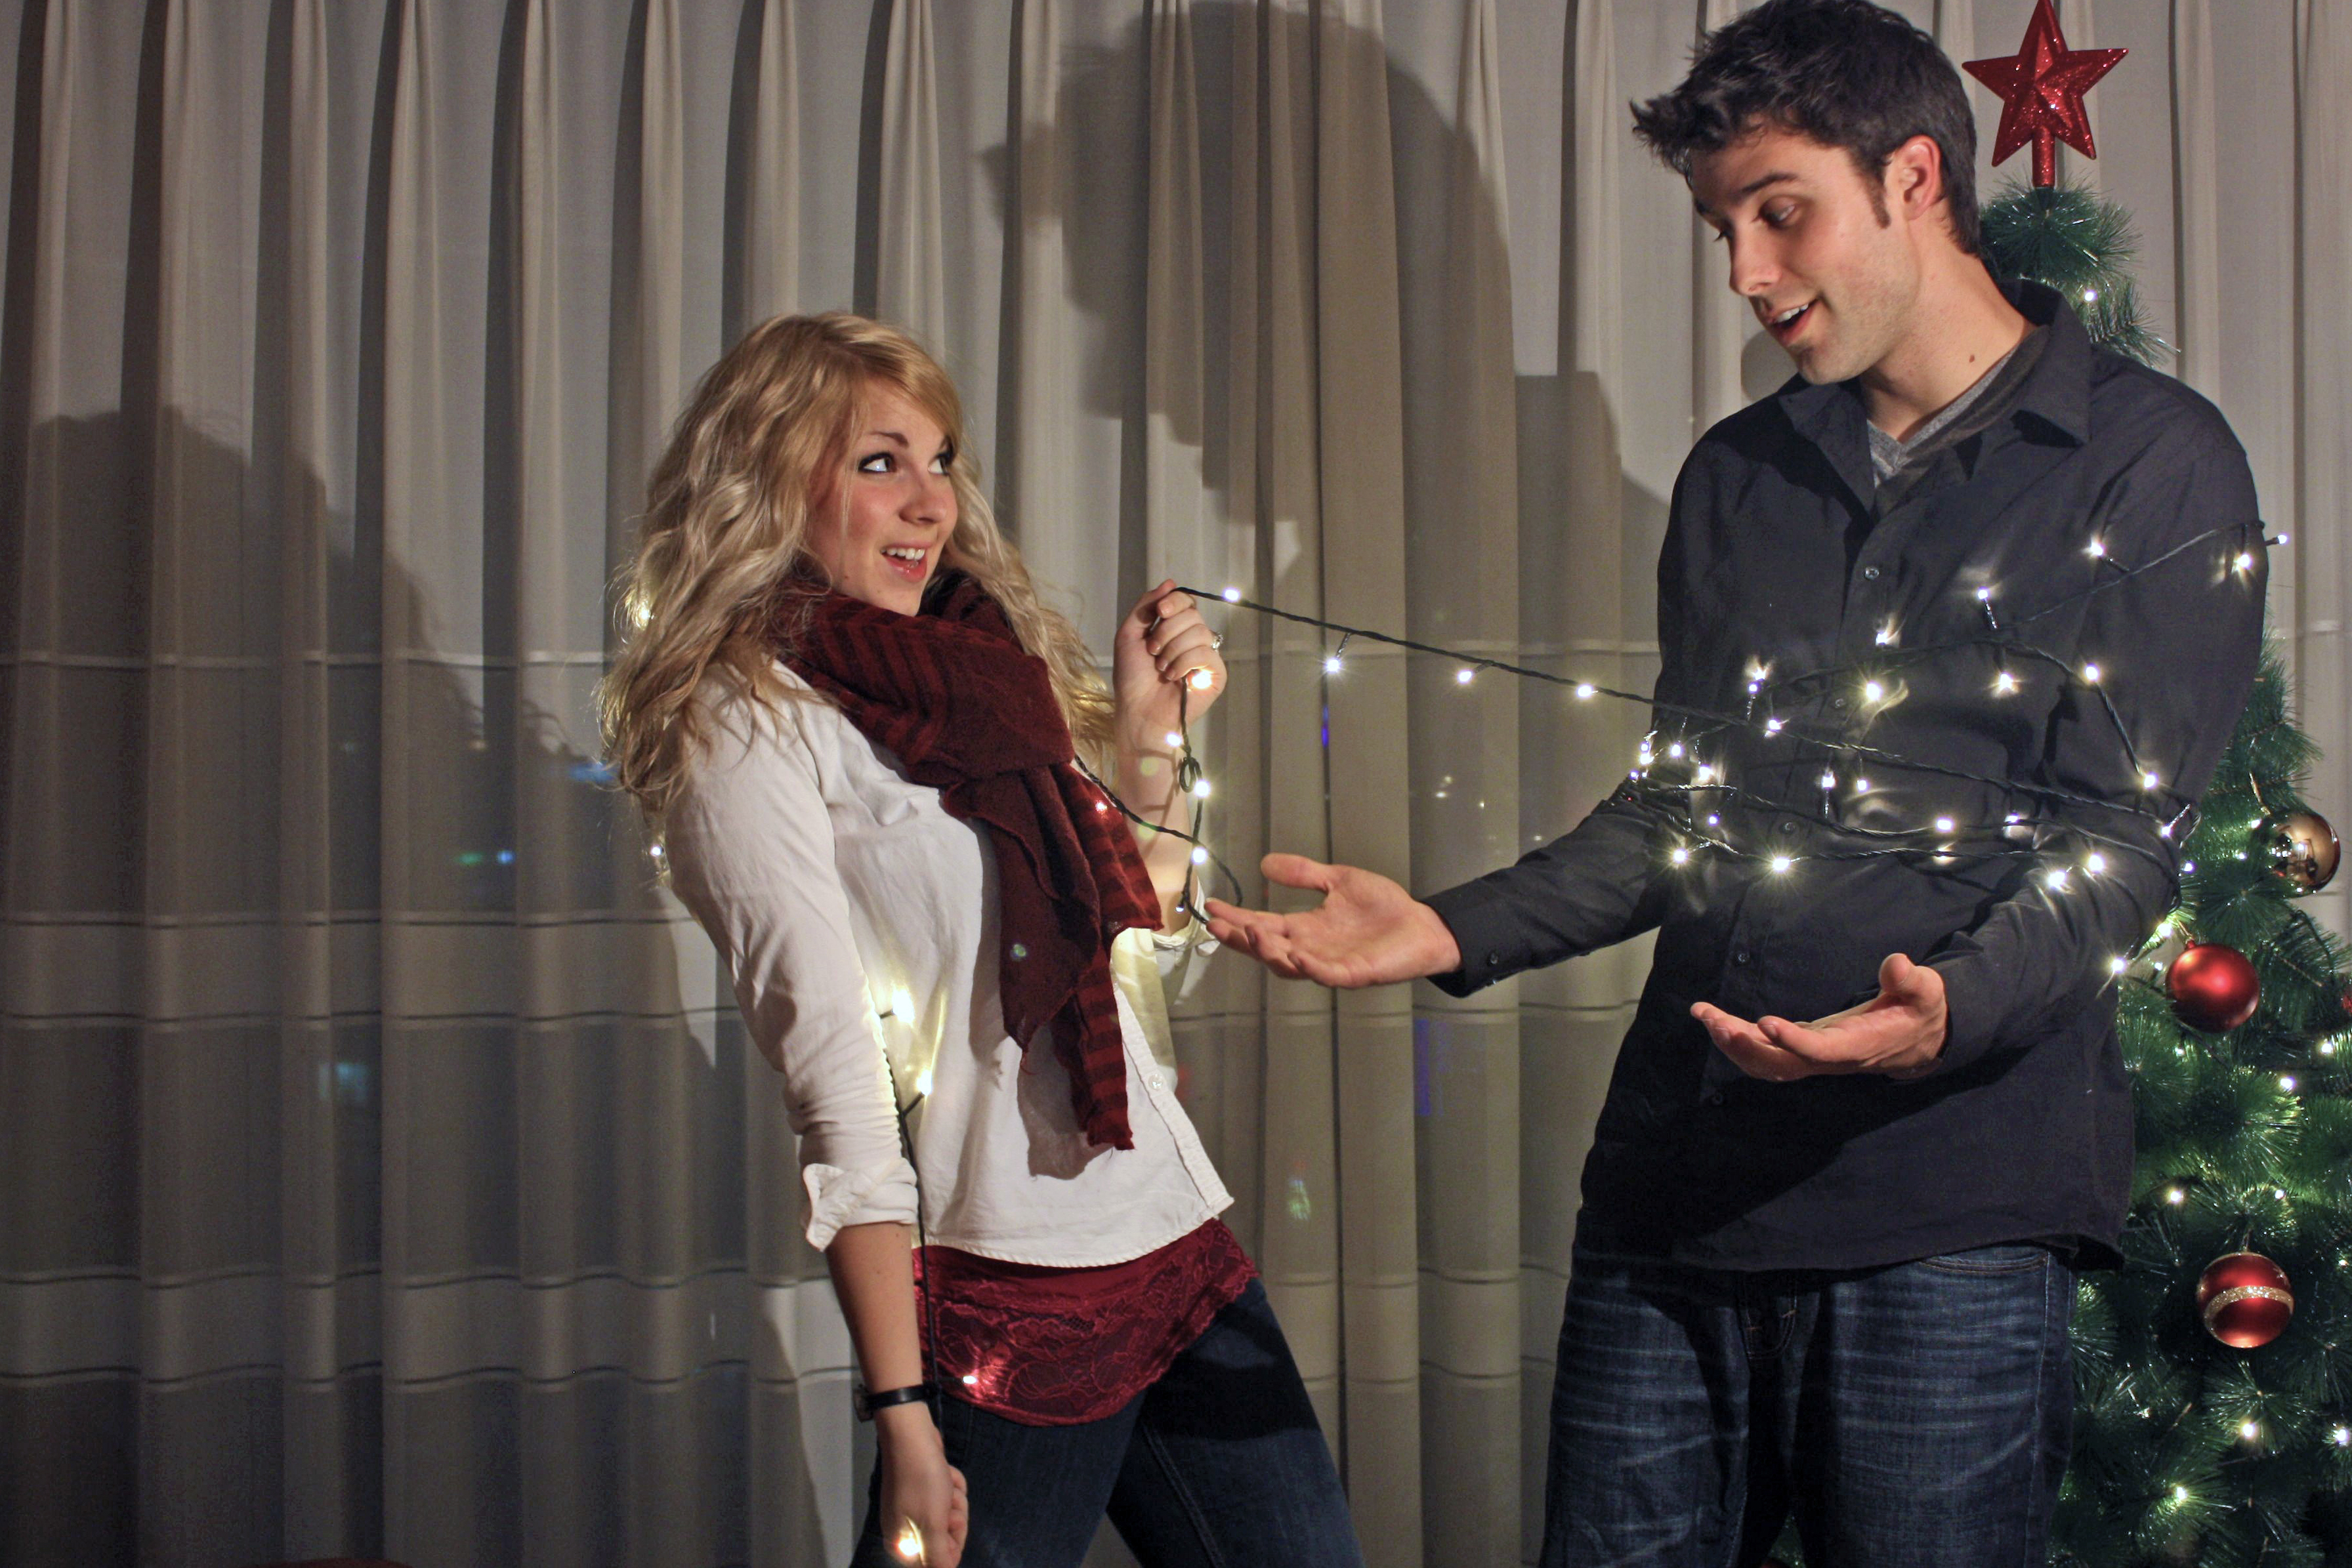 DIY Holiday Photo shoot using a tripod, self timer, and a little ingenuity